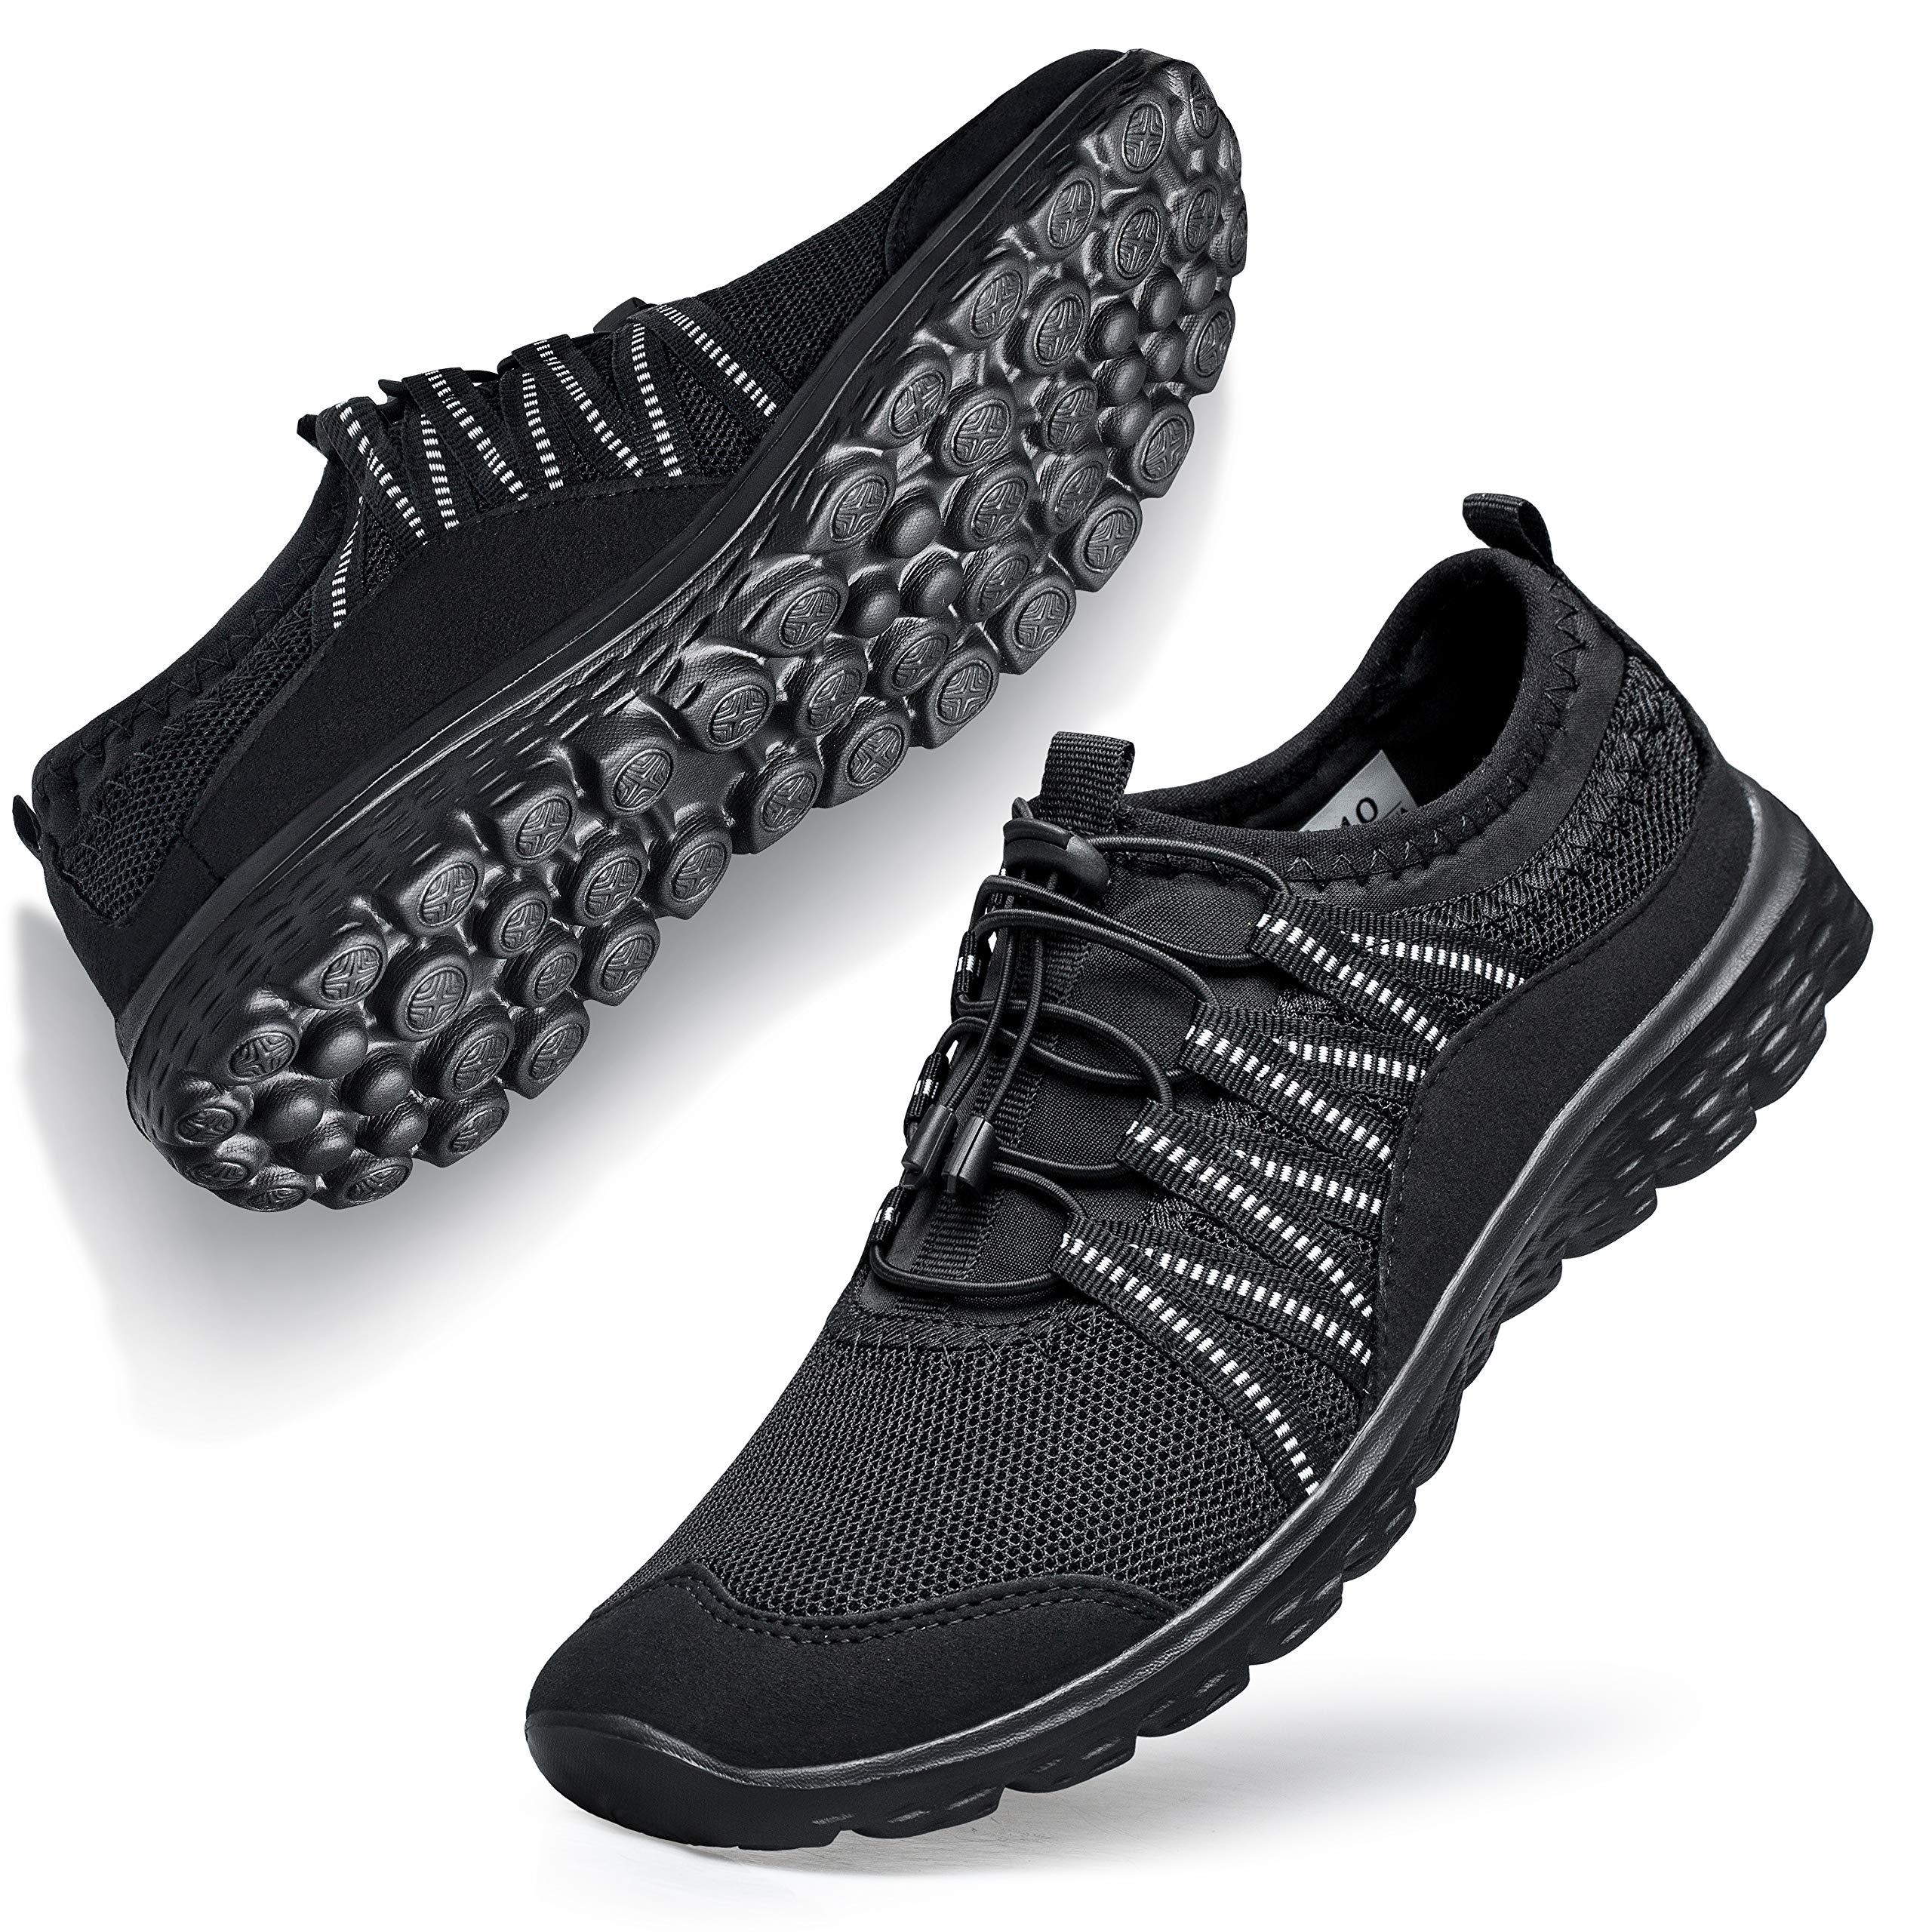 Walking Shoes for Women Sneakers Fashion Laceless go Walk Work Out Nursing Casual Gym Athletic Sport Travel Bowling Outdoor Indoor Shoes for Women All Black 10 M US by Belilent